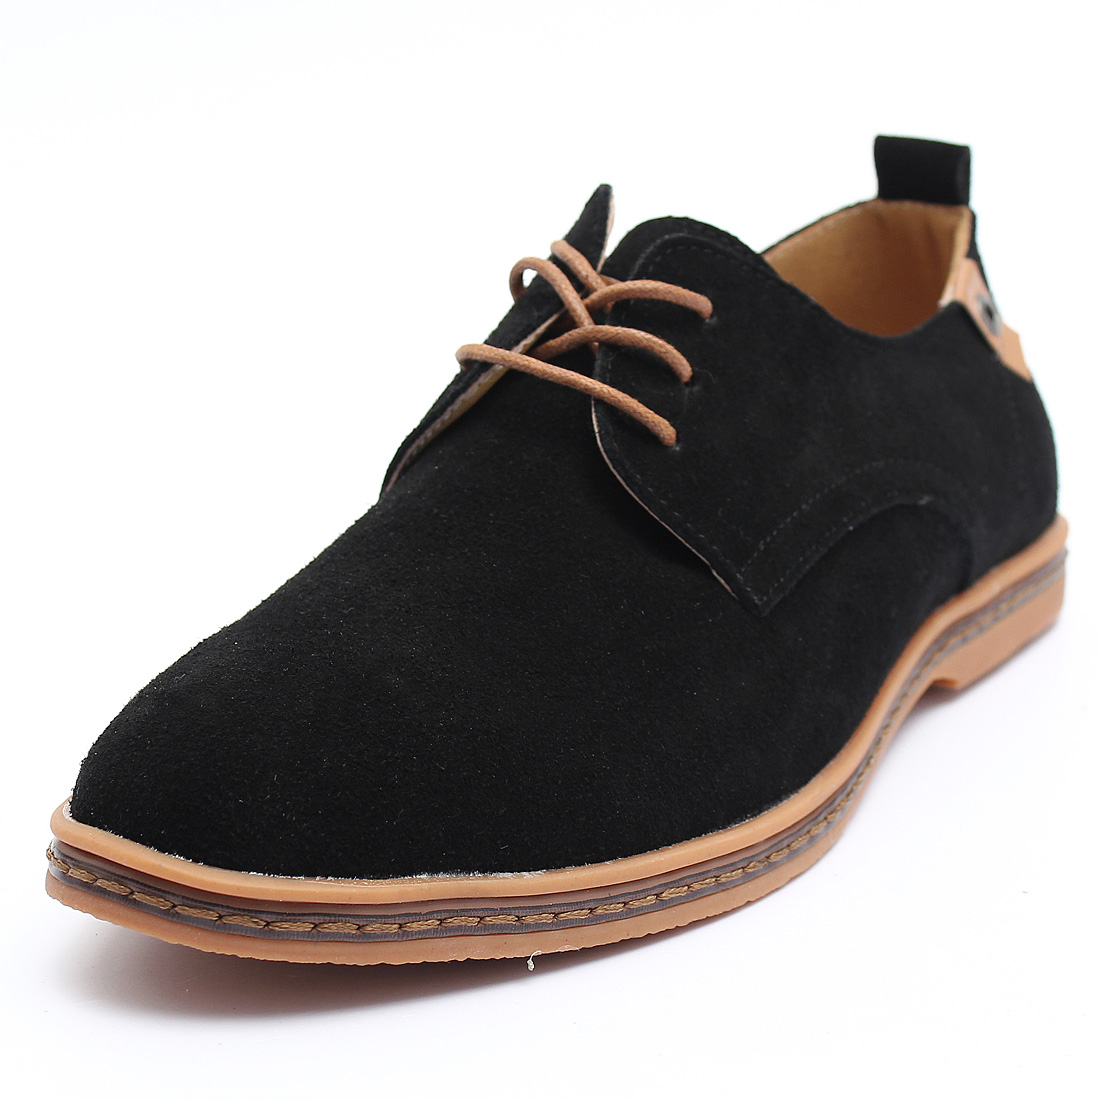 Men Suede Leather Shoes Menu0026#39;s Dress Formal Oxfords Lace Up Casual Flats Loafers | EBay